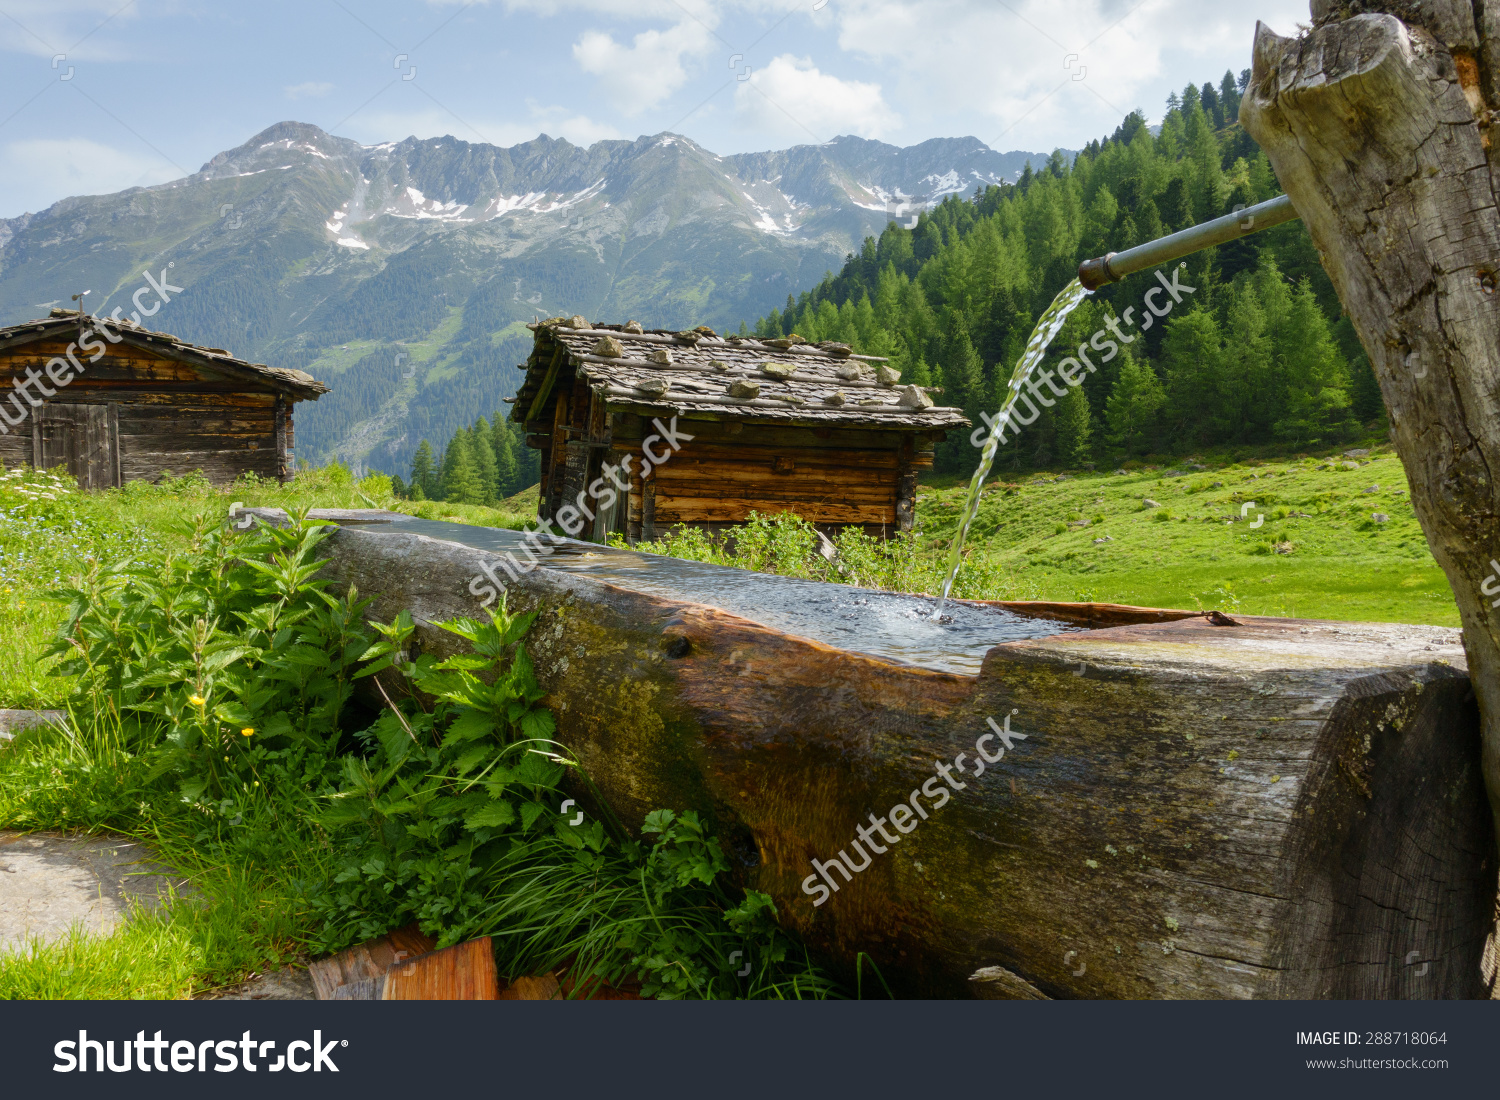 Old Mountain Huts In The Alps And Wooden Fountain Stock Photo.